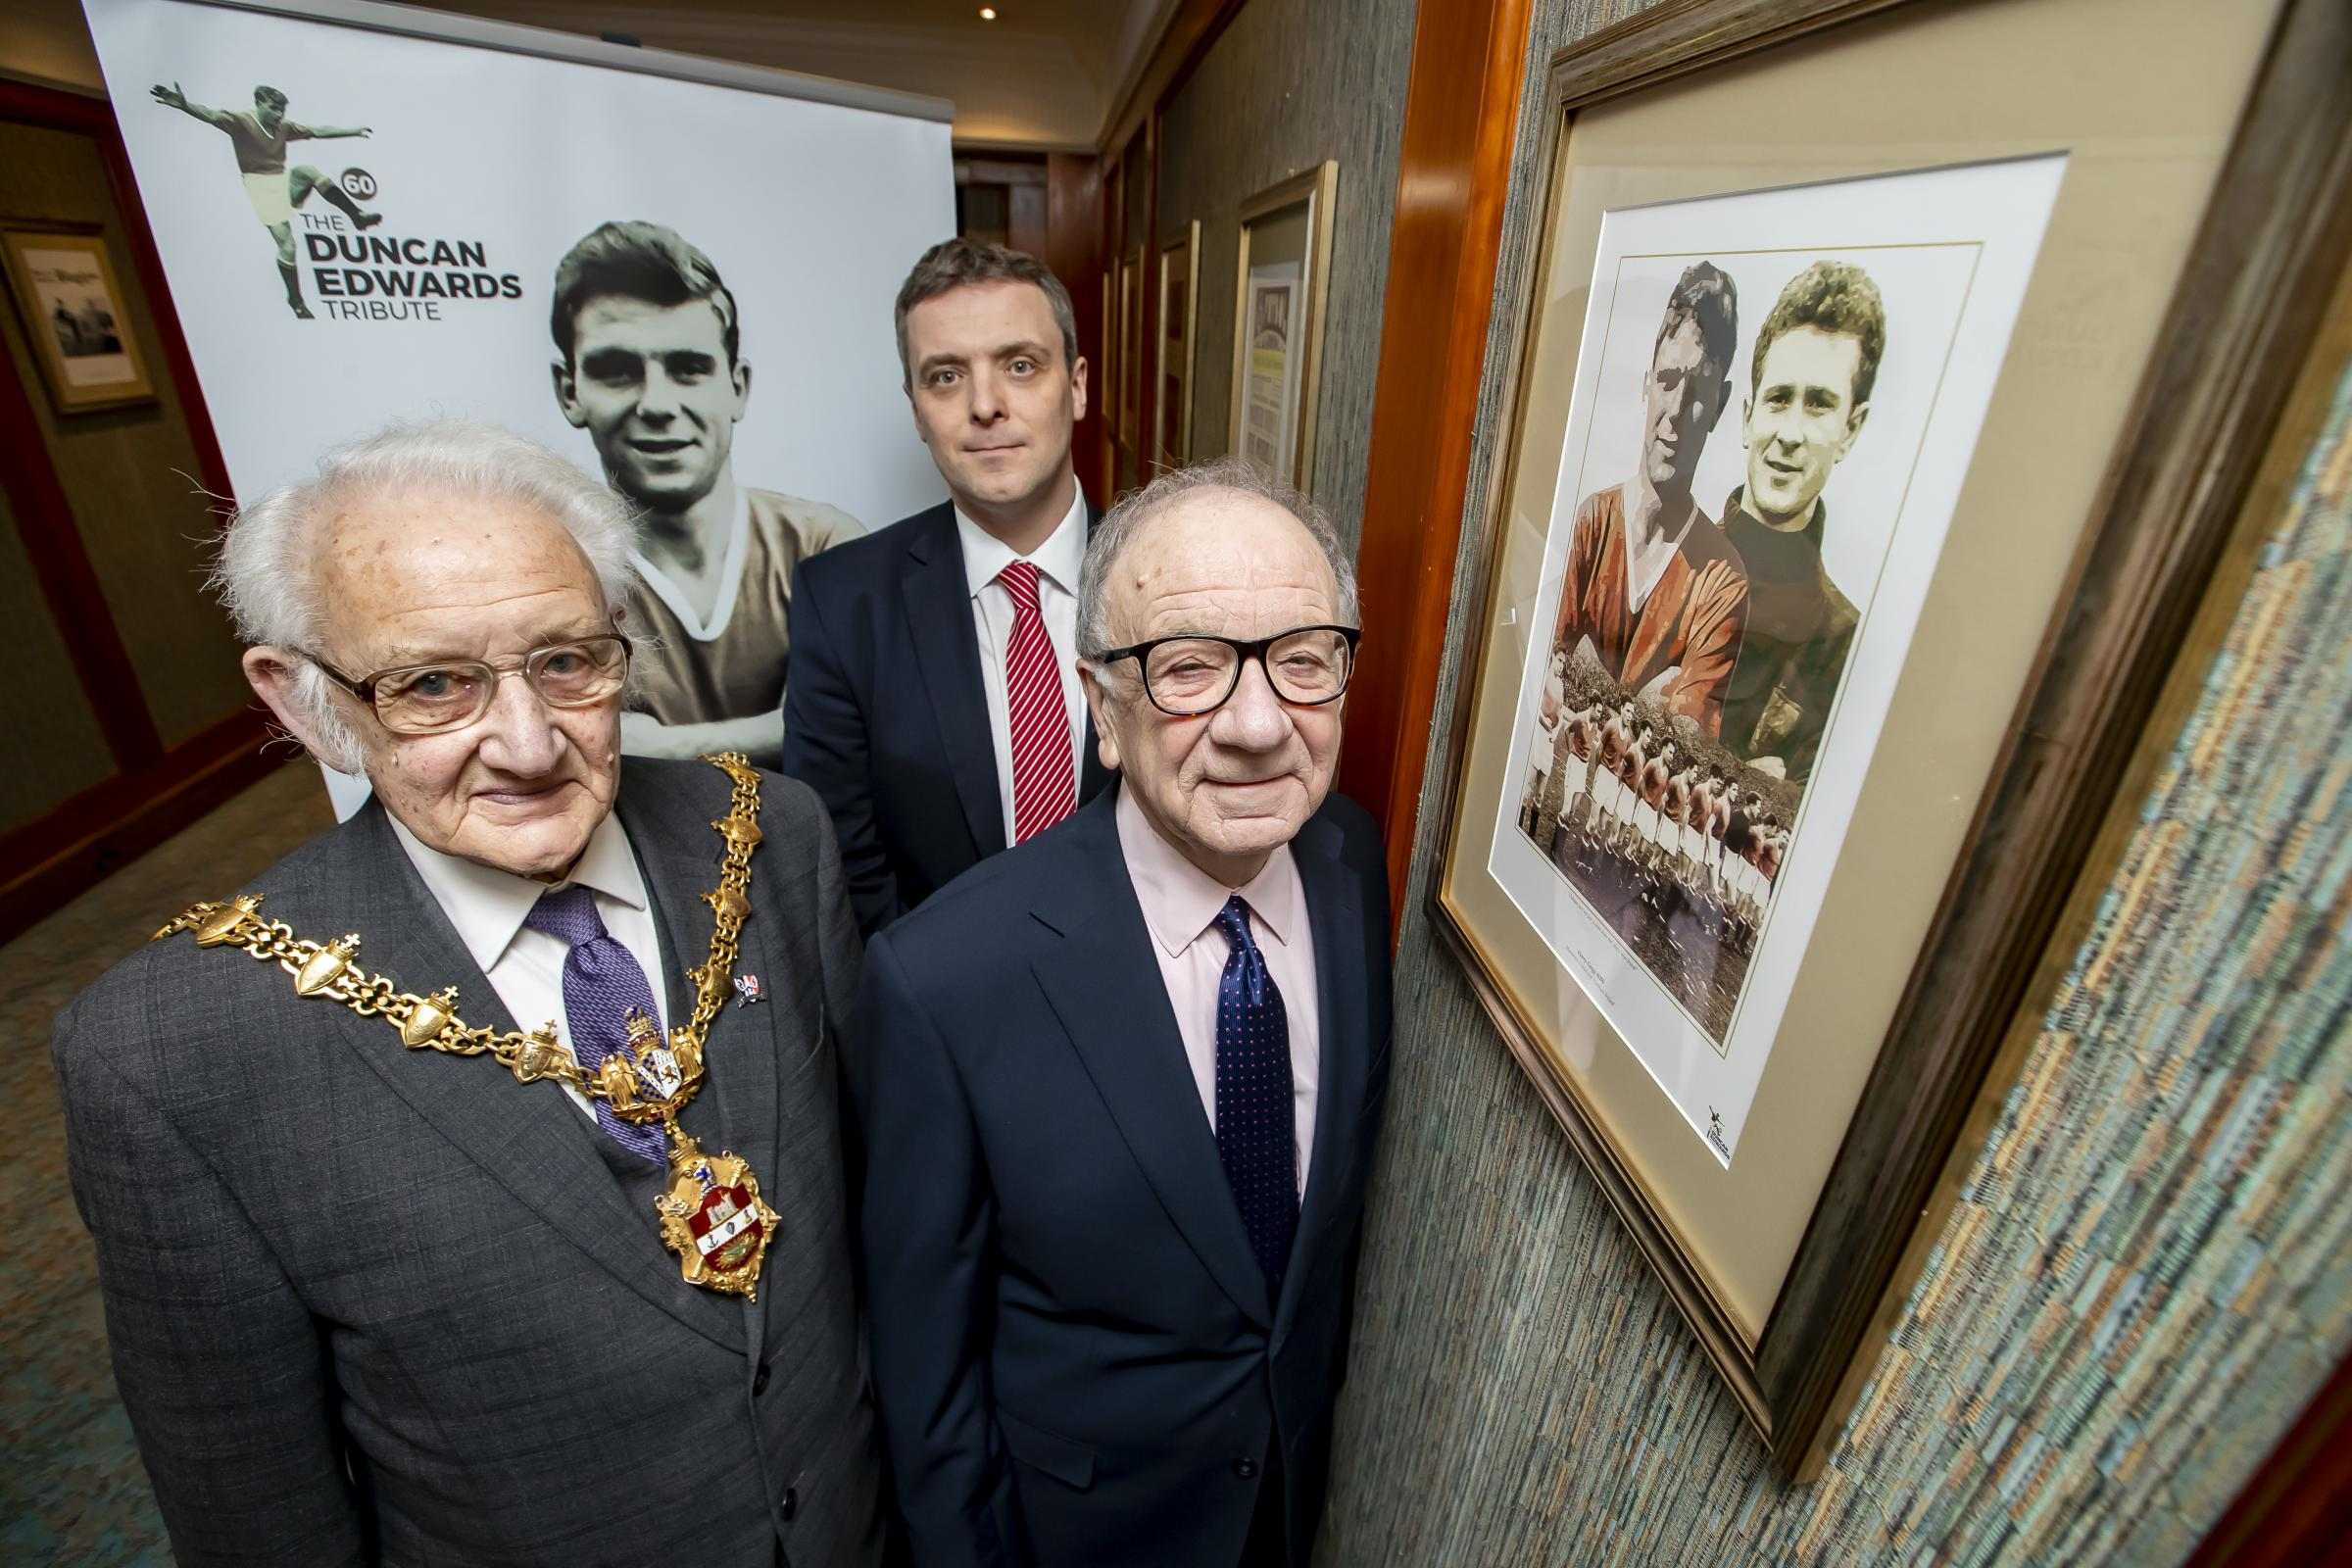 The Duncan Edwards tribute room has opened at Copthorne Hotel Merry Hill Dudley.  Pictured L/R Jim Cadman and David Barratt. Photo: Jonathan Hipkiss